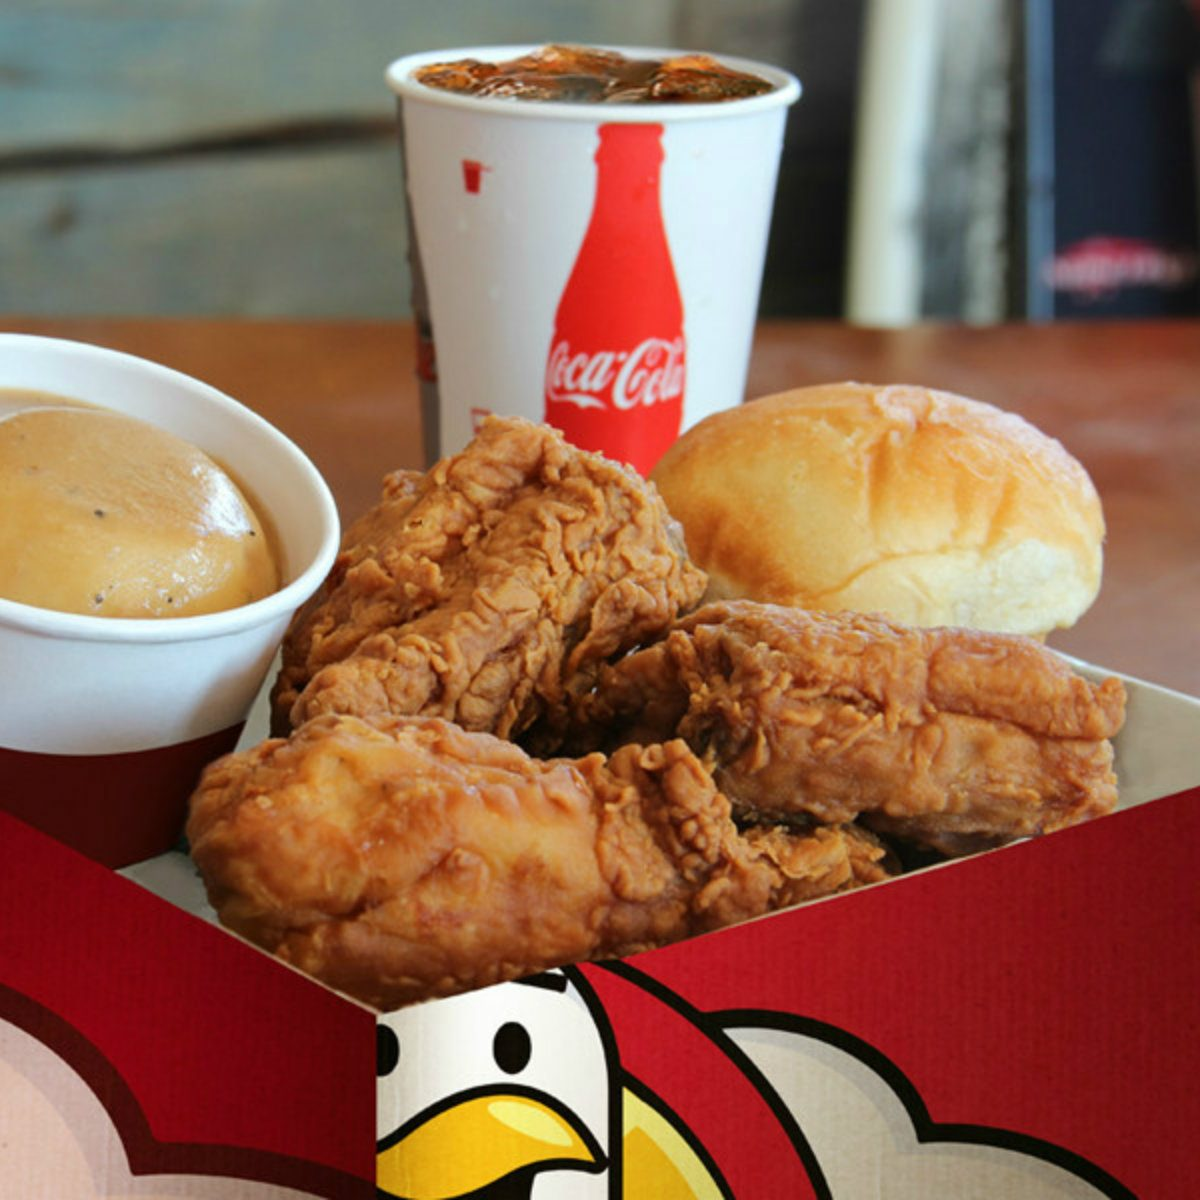 Heaven Sent Fried Chicken with a roll, sauce and drink